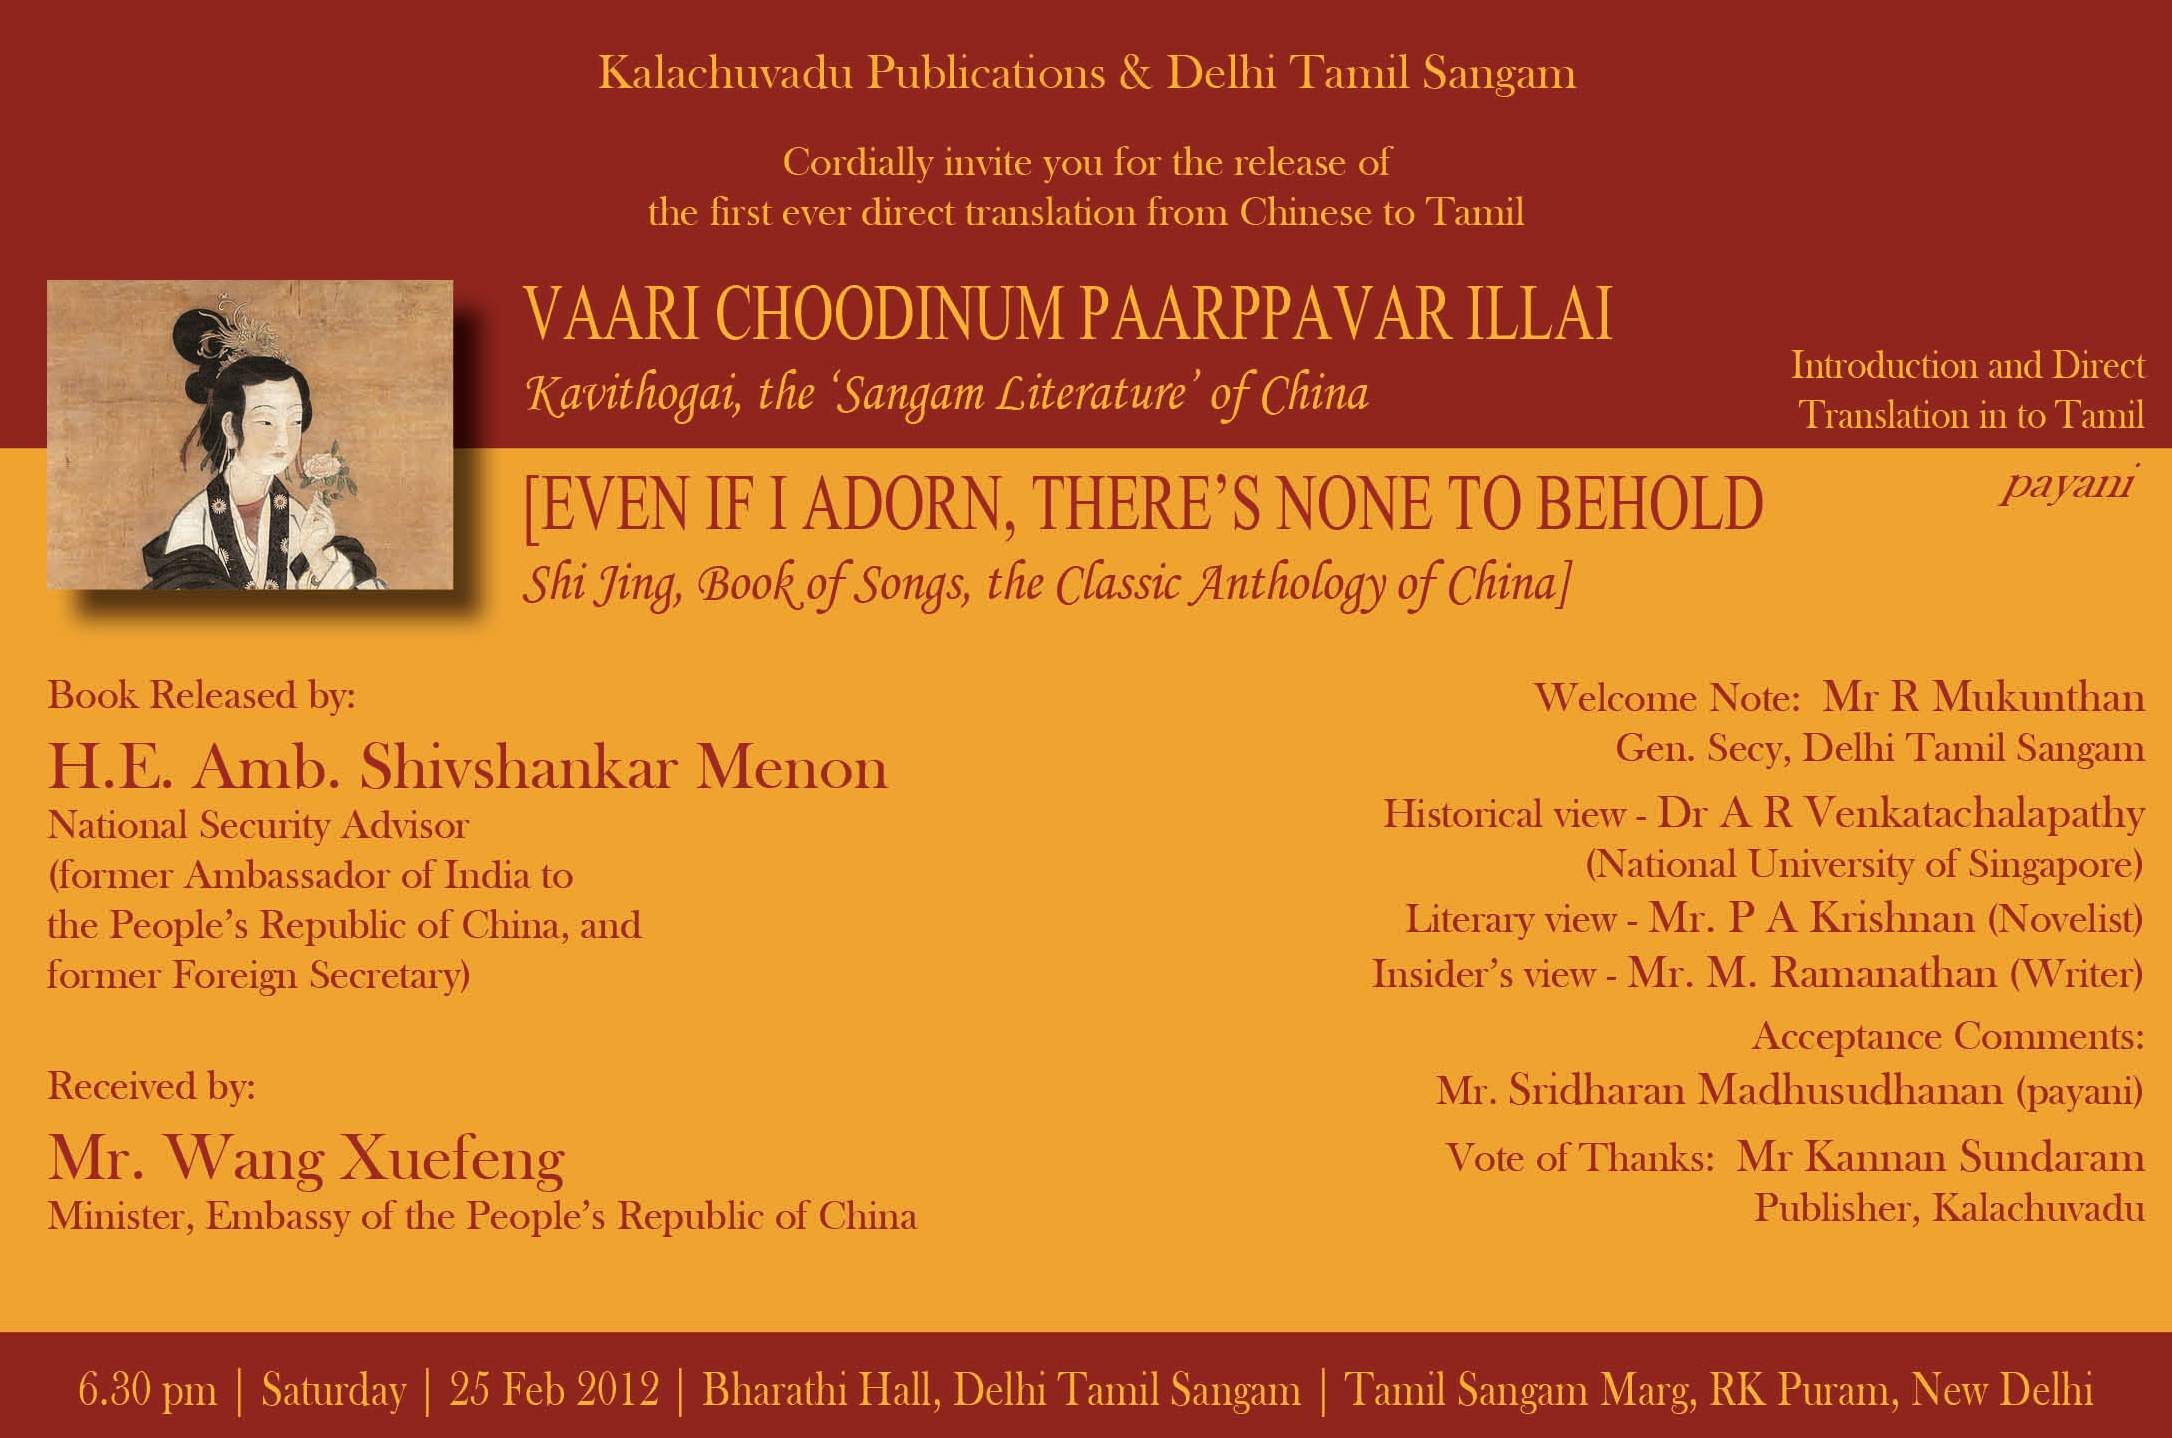 Kalachuvadu to publish a collection ancient Chinese poems in Tamil